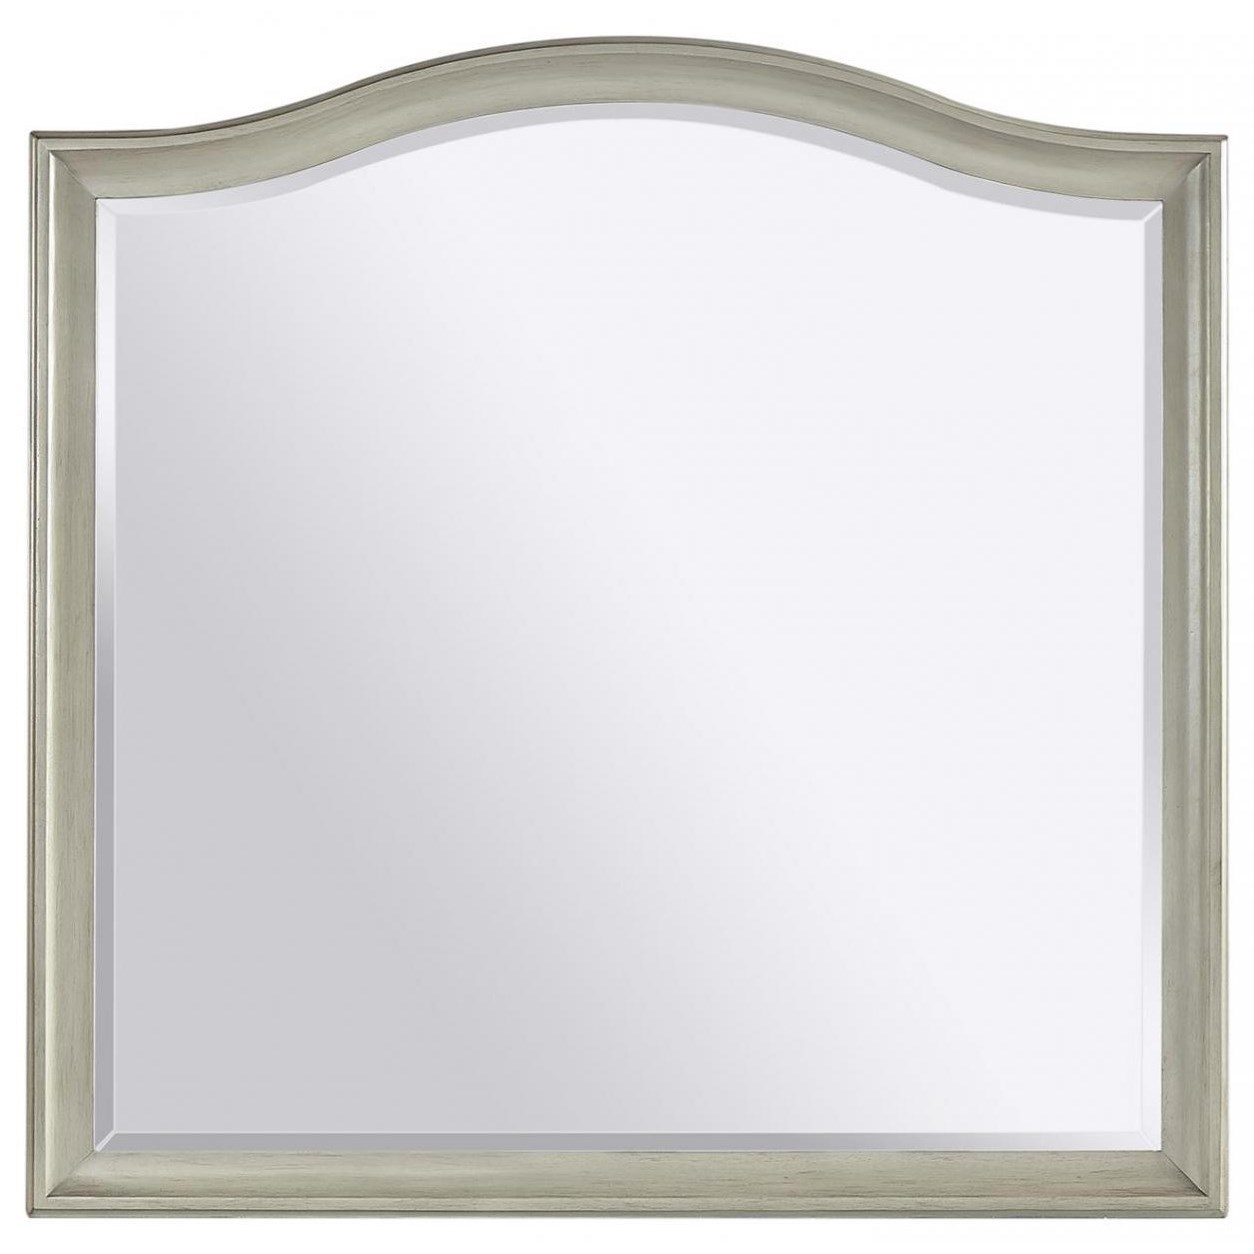 Charlotte  Landscape Mirror by Aspenhome at Stoney Creek Furniture